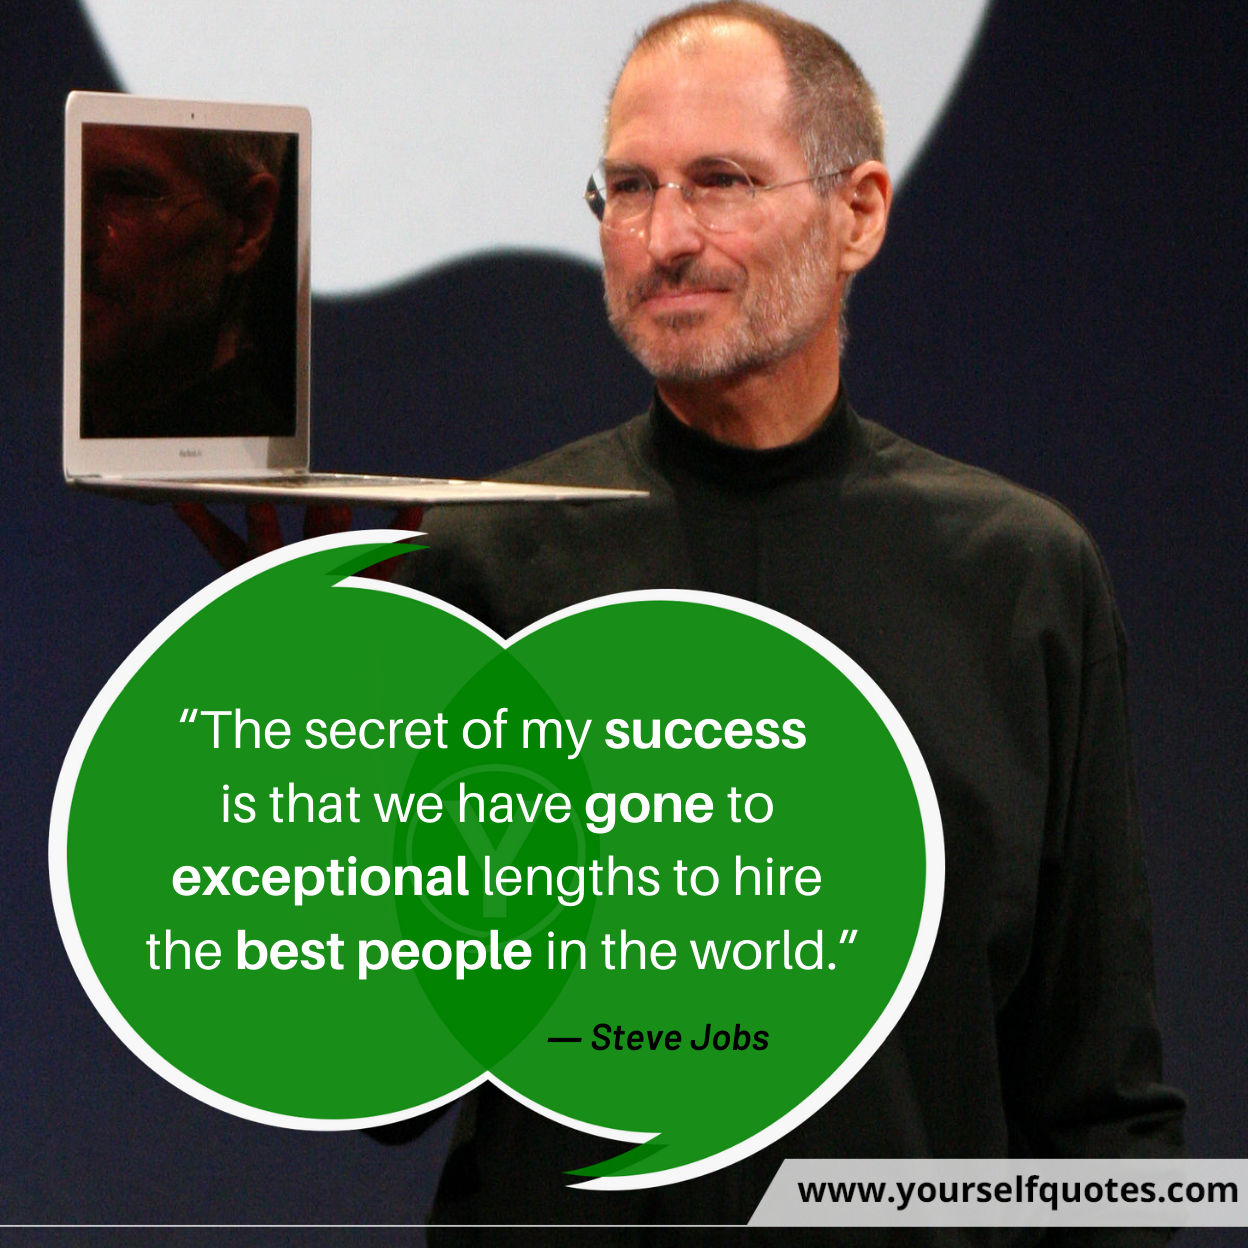 Steve Jobs Quotes on Success Images